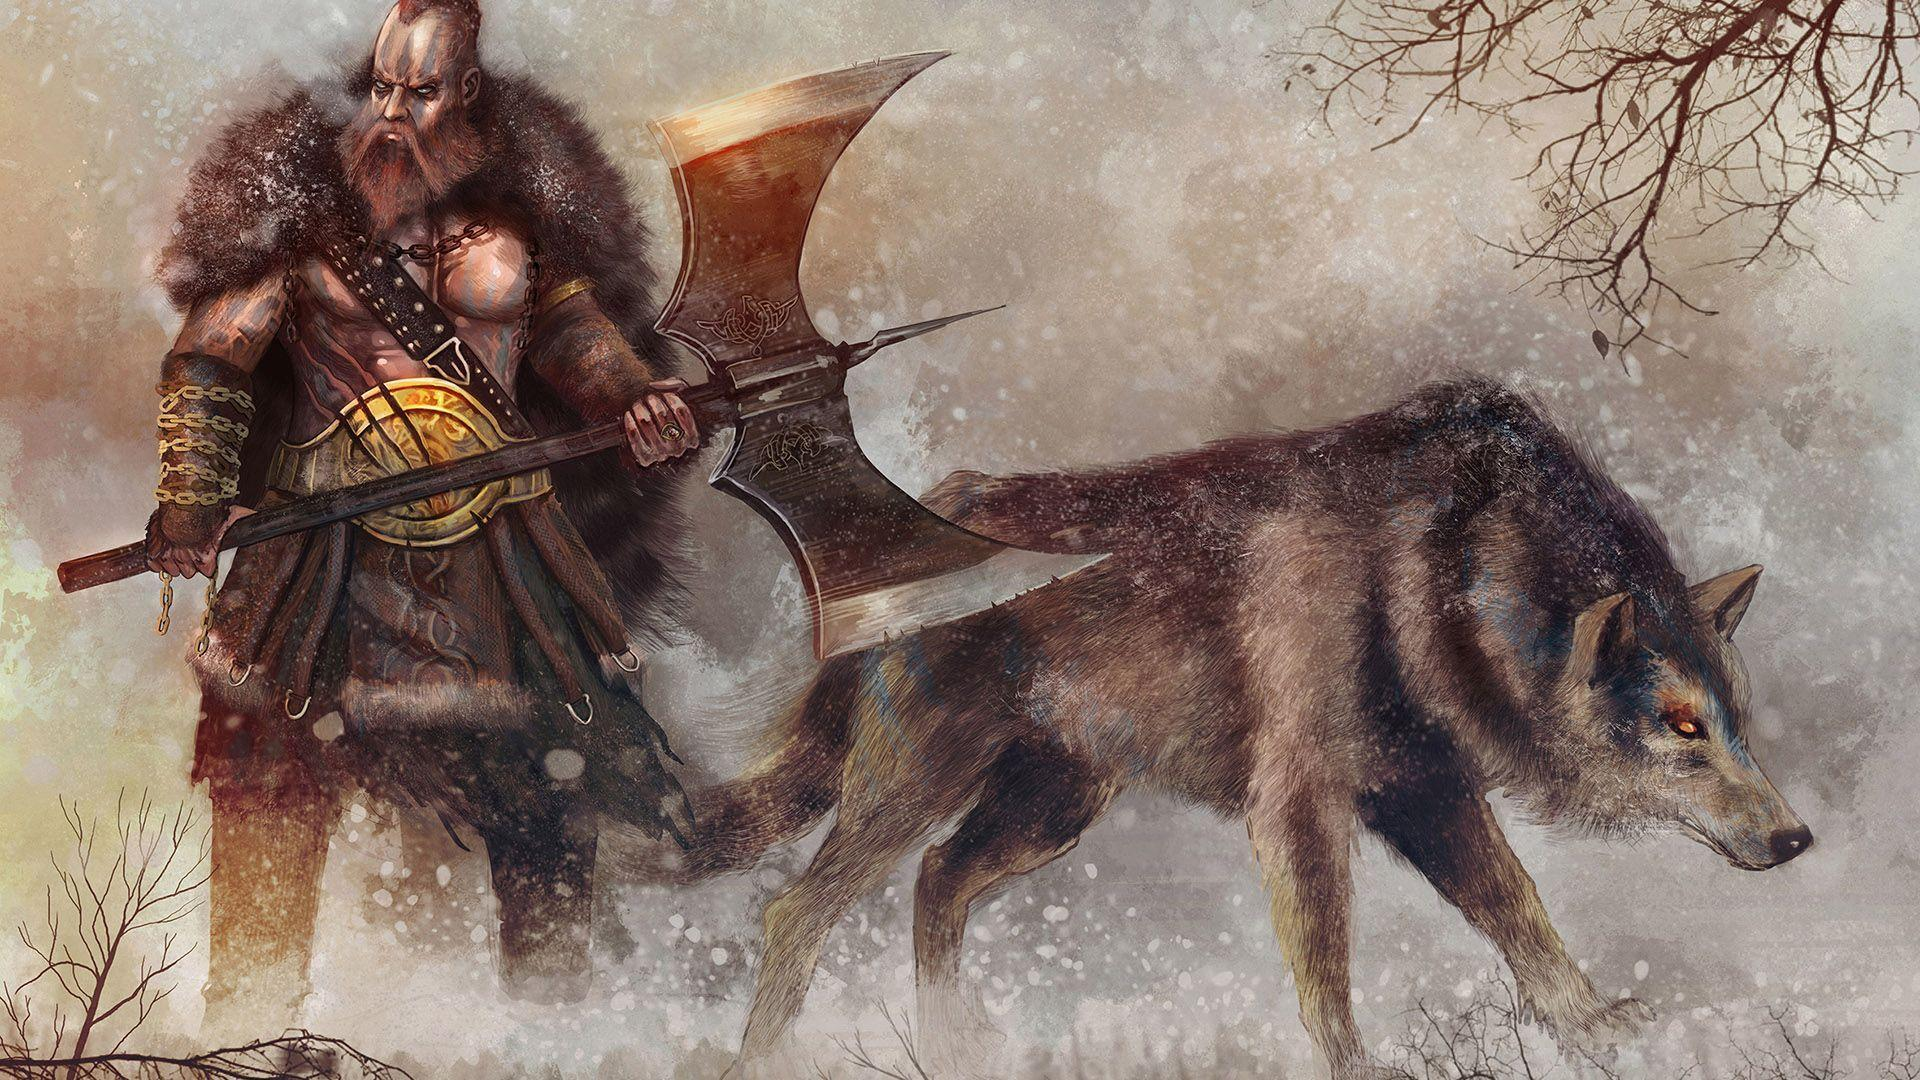 Free Animated Autumn Wallpaper Hd Warrior And His Wolf In The Snow Wallpaper Download